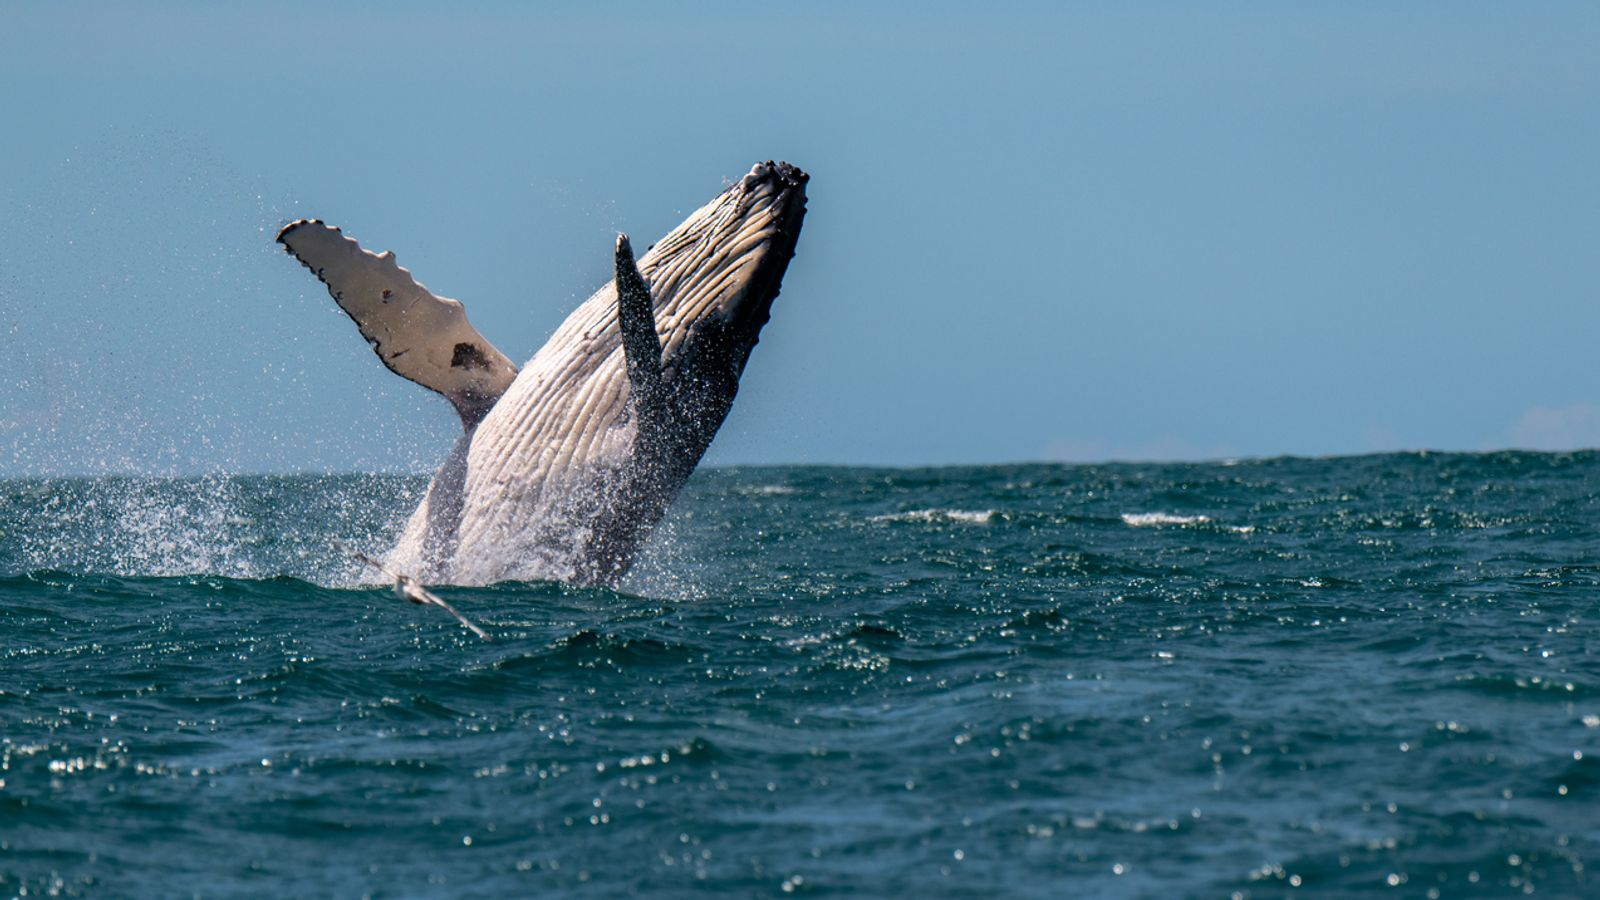 Endangered humpback whales spotted by fishermen in Pakistani waters near Pasni